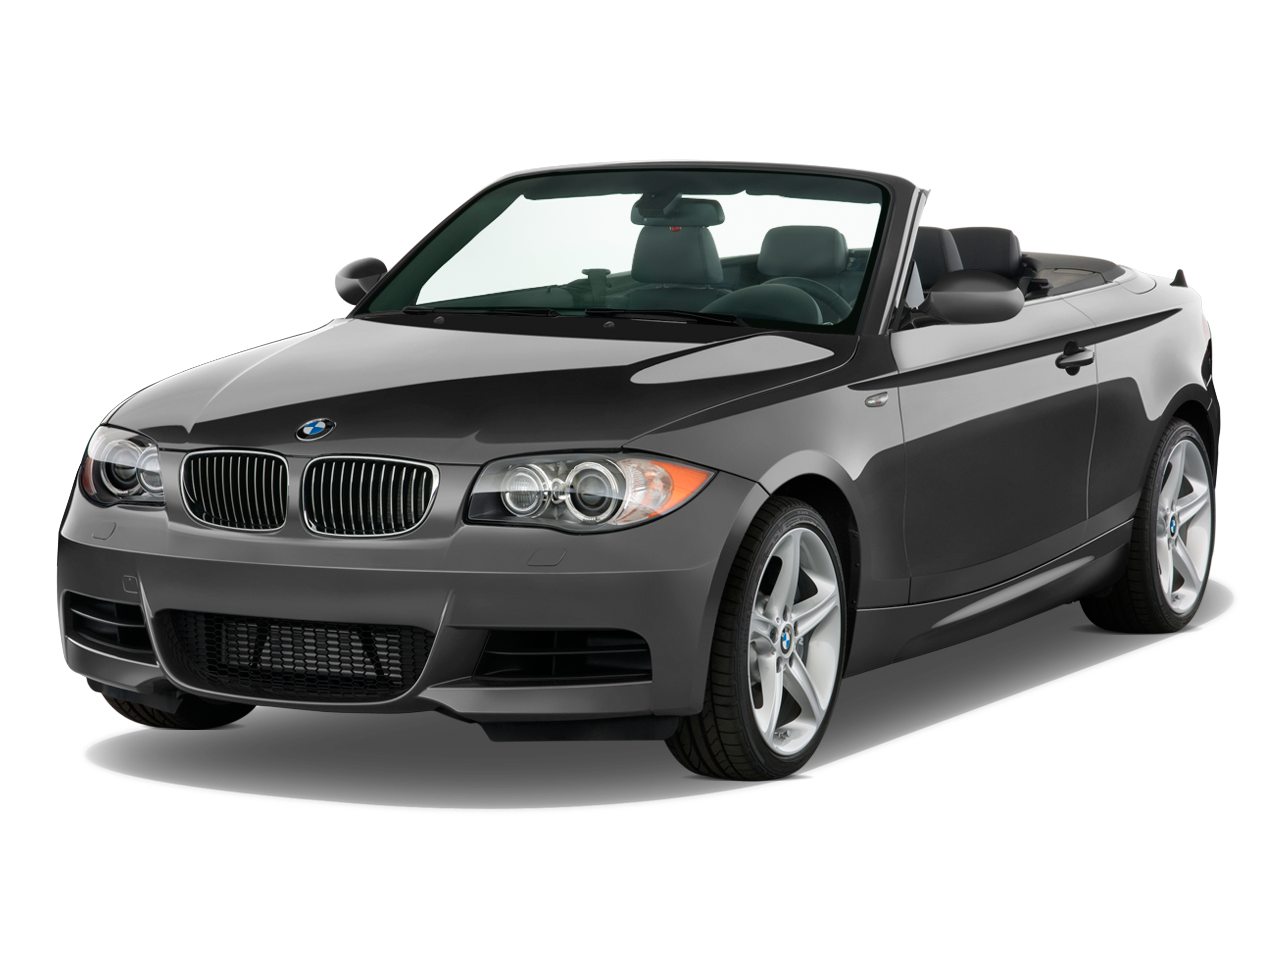 2009 bmw 128i convertible bmw luxury convertible review automobile magazine. Black Bedroom Furniture Sets. Home Design Ideas